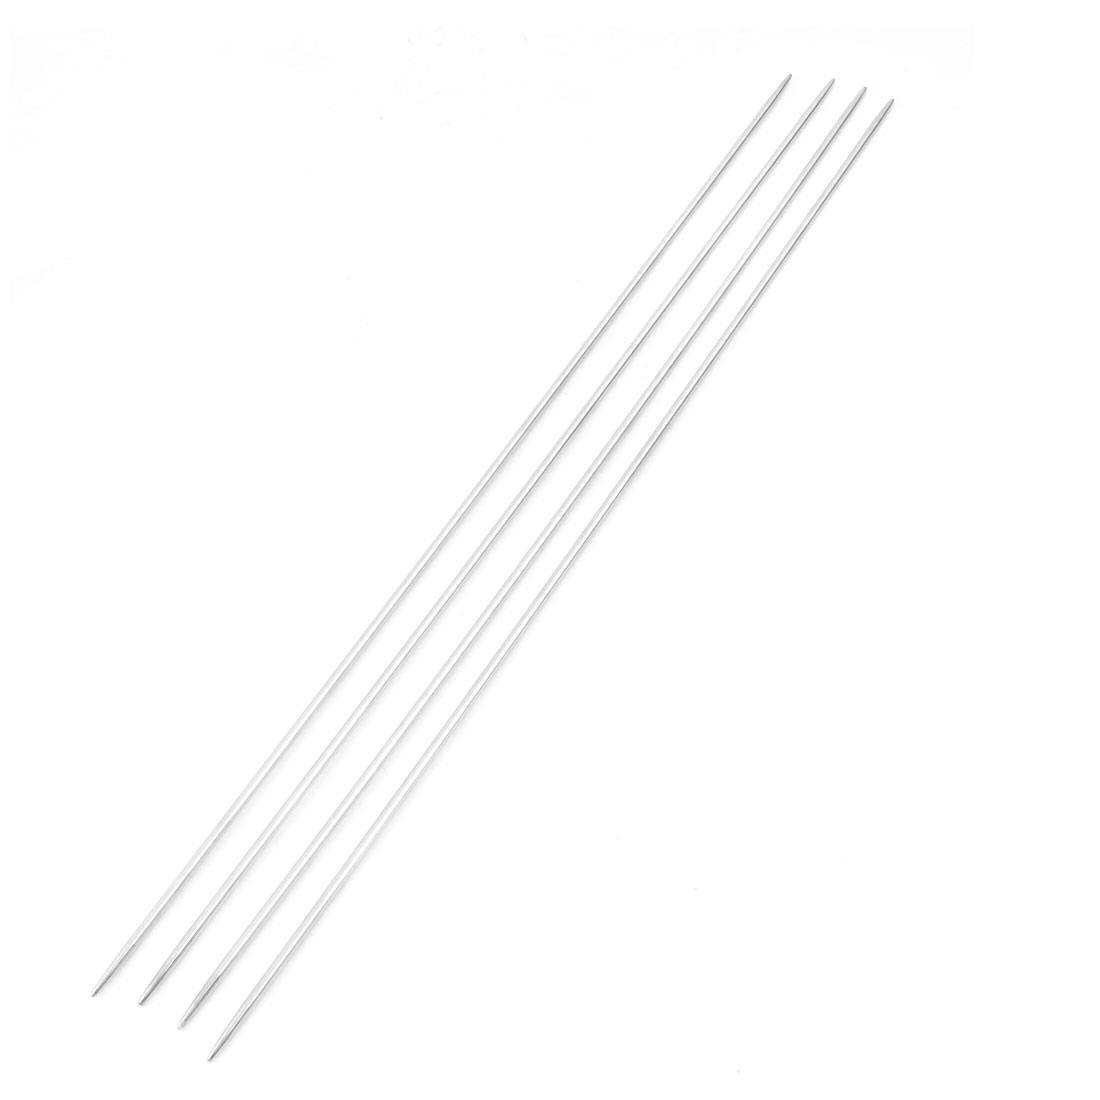 Silver Tone Sweater Weaving Hollow Double Point Knitting Needles Size 9 4 Pcs